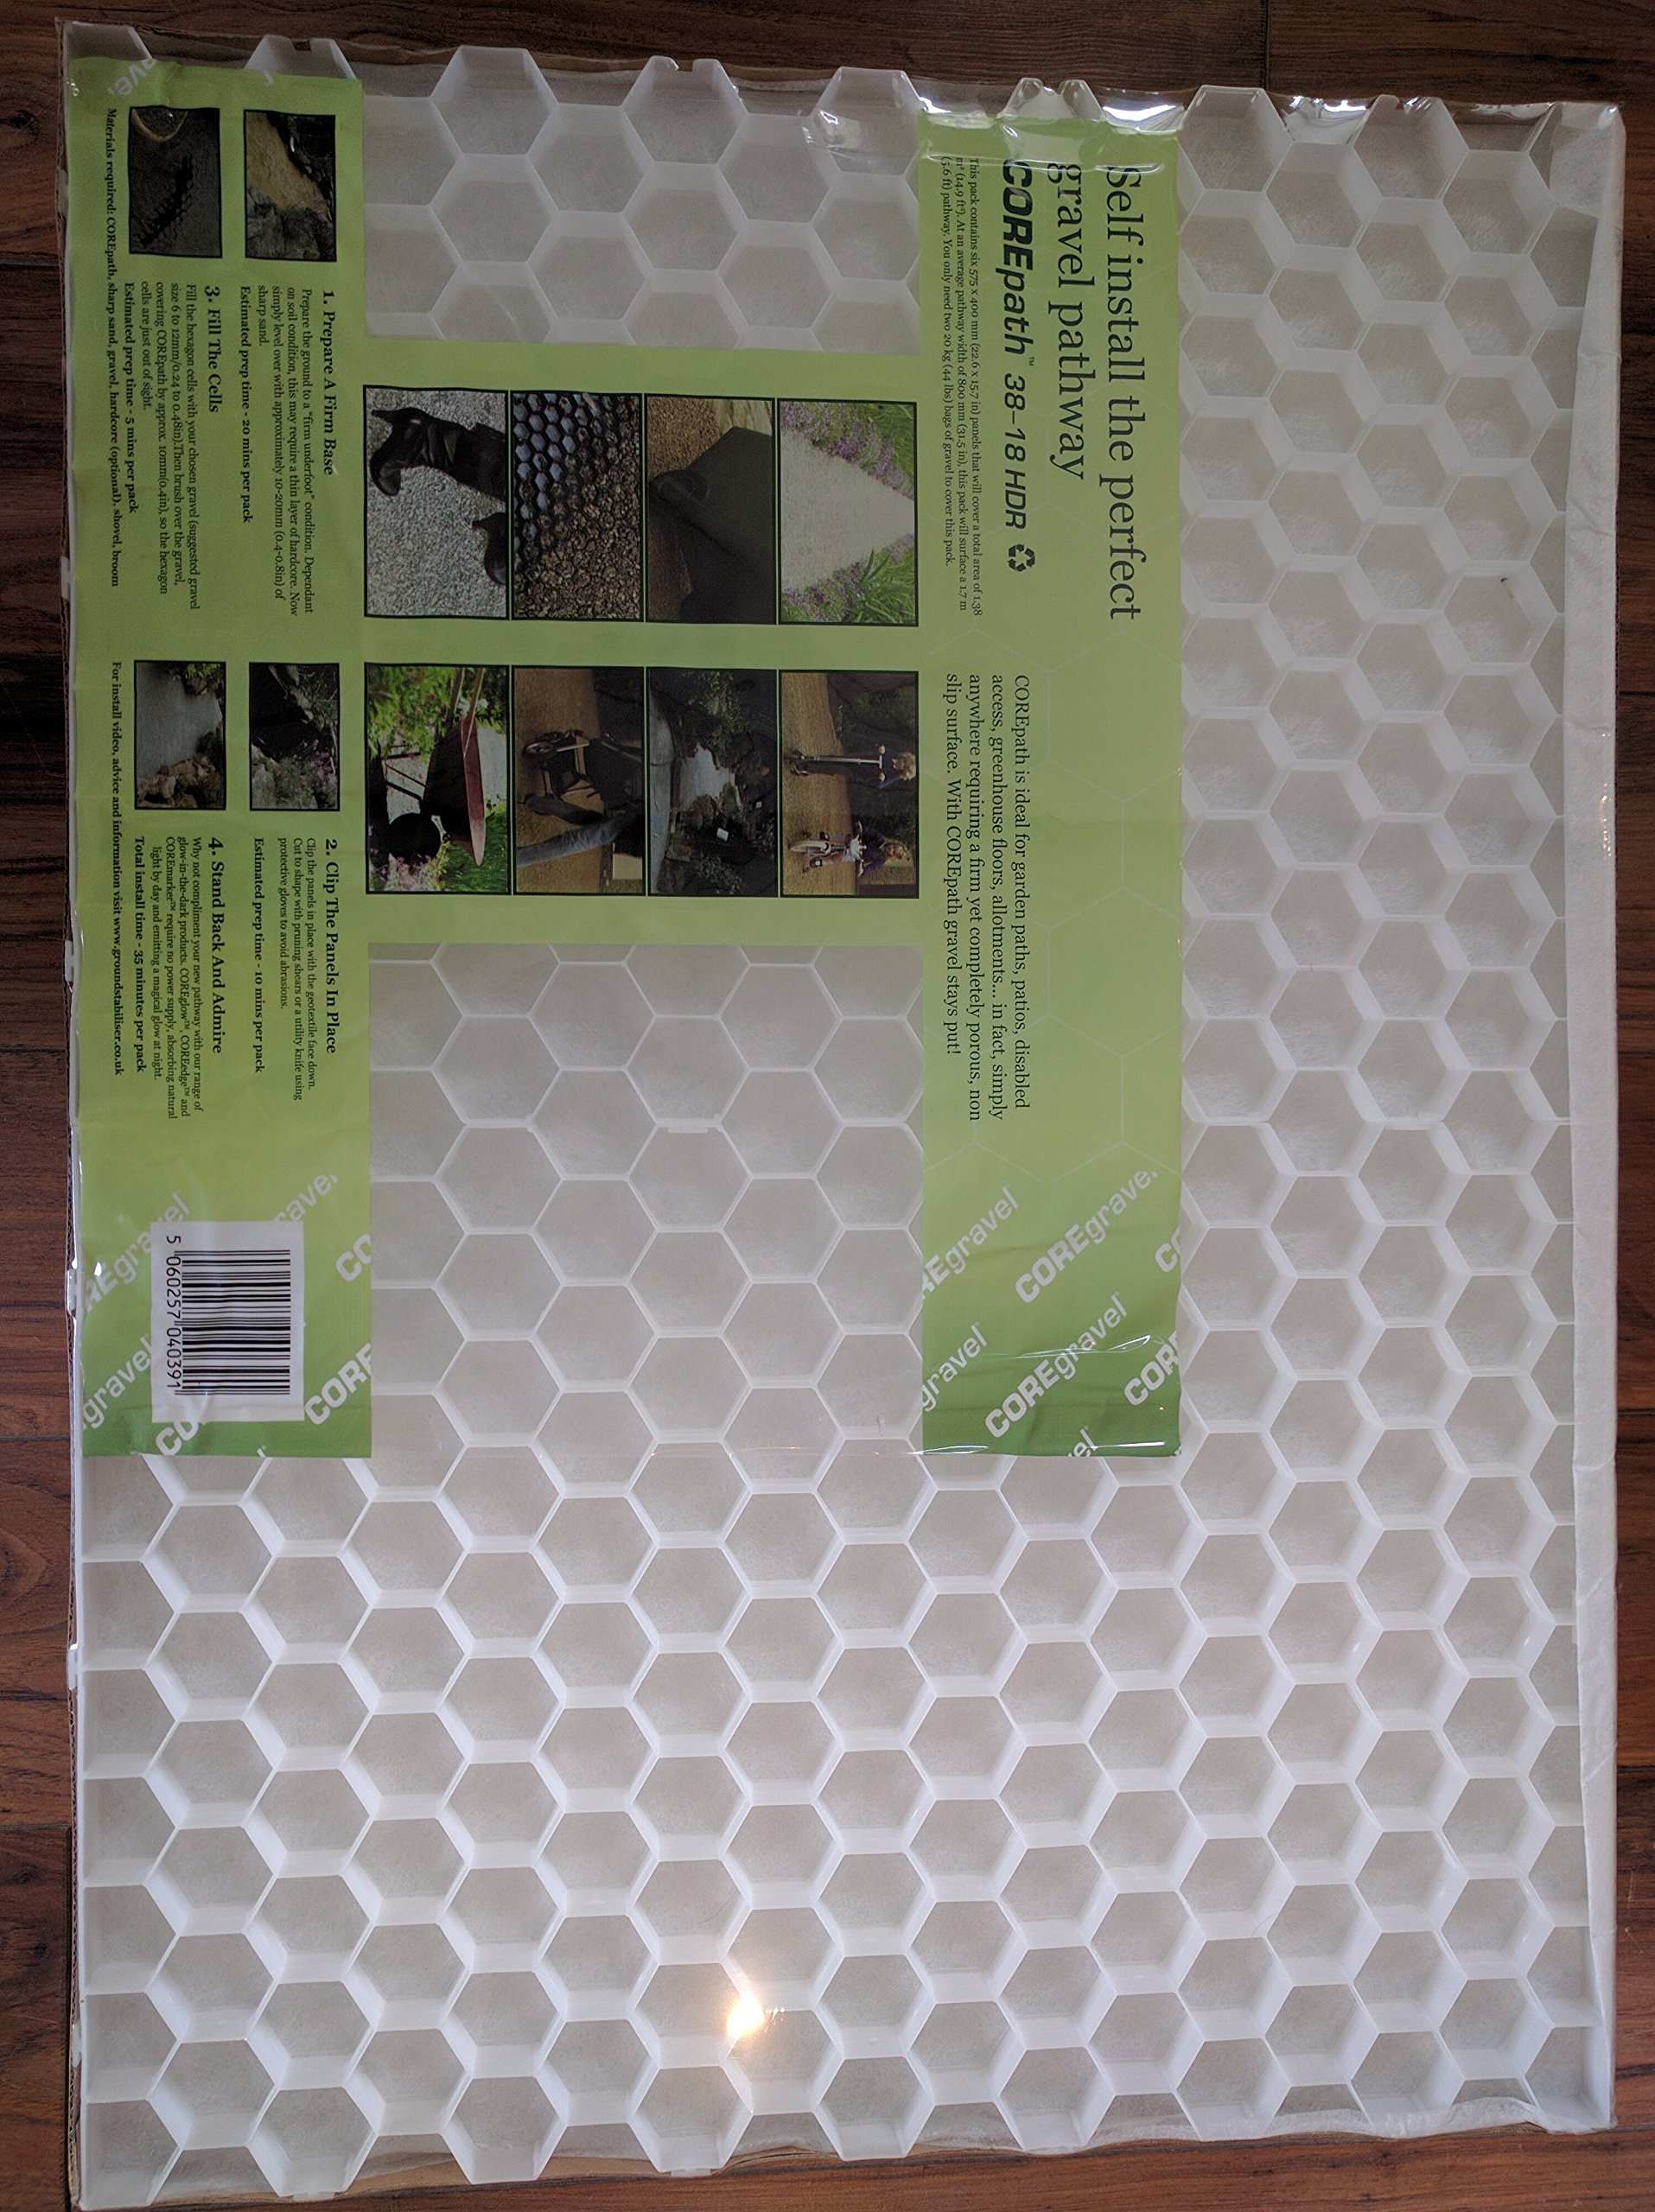 CORE Path Gravel Pathway Stabilizer Grid with Attached Weed Control Membrane. Each Pack Will Cover a 8 Meters Long Pathway X 0.8 Meters Wide, Without Cutting, or a 6.50m2 (70 Sq.ft) Area